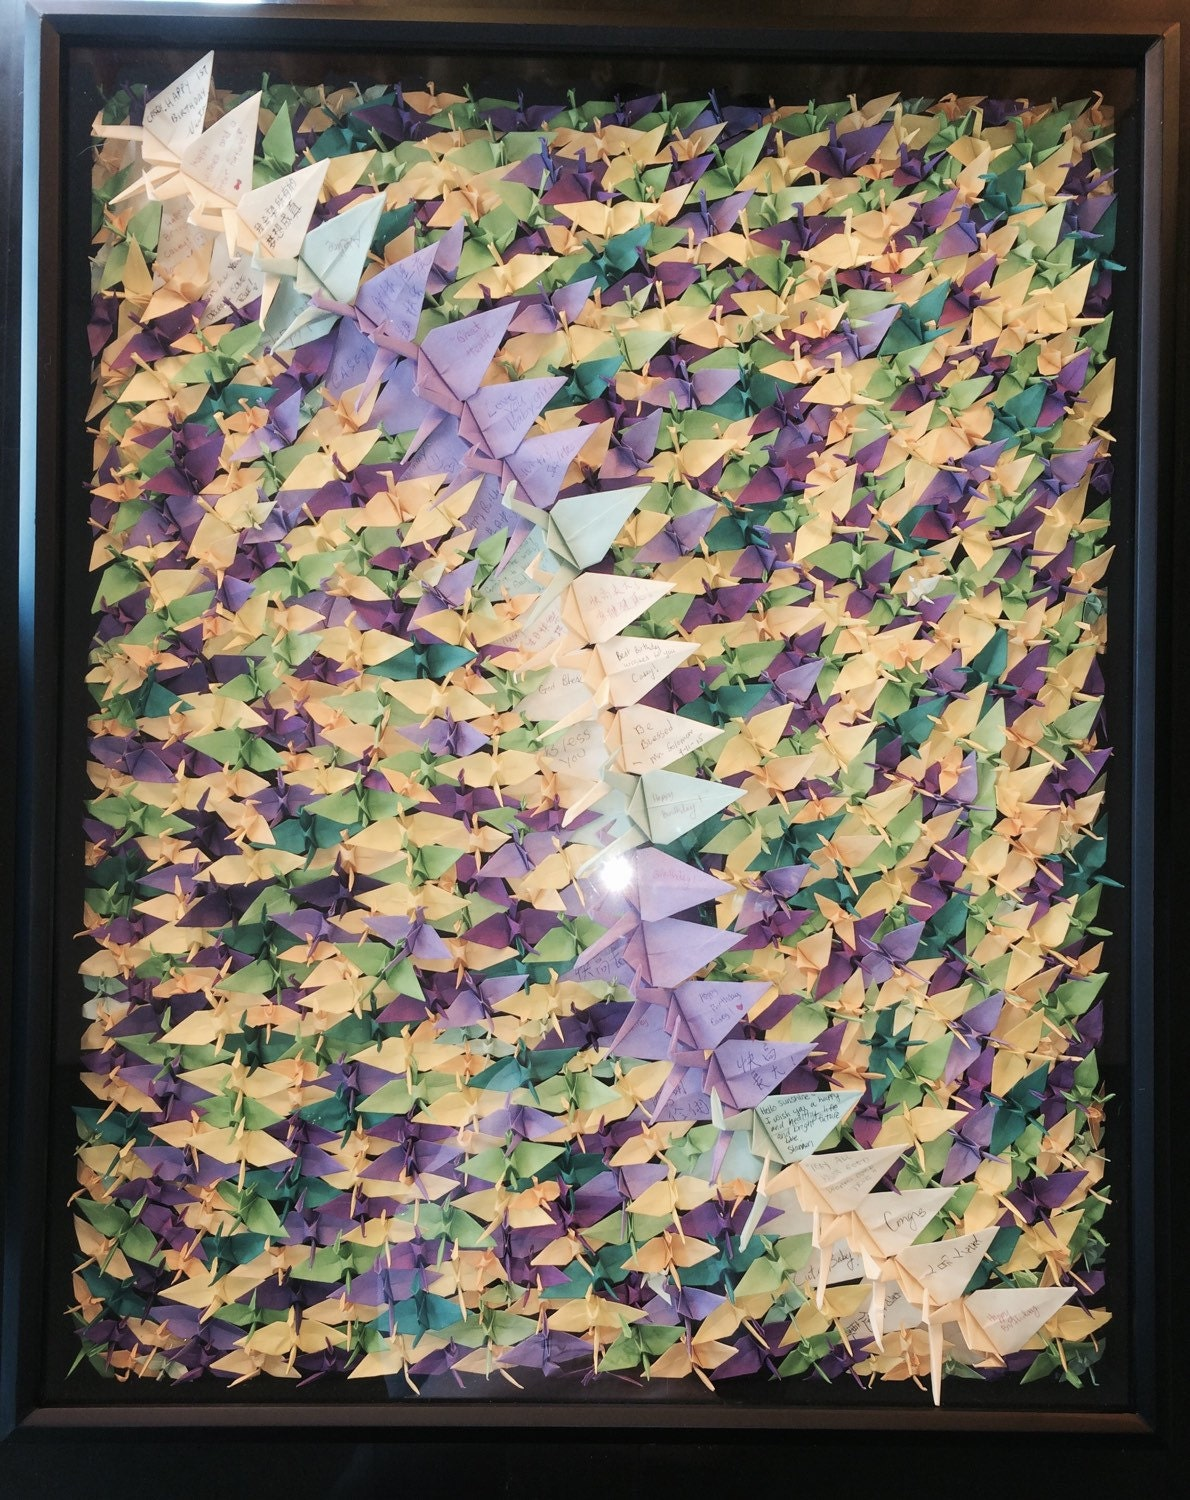 1000 origami cranes art in glass frame by origamibywingy for 1000 paper cranes wedding decoration